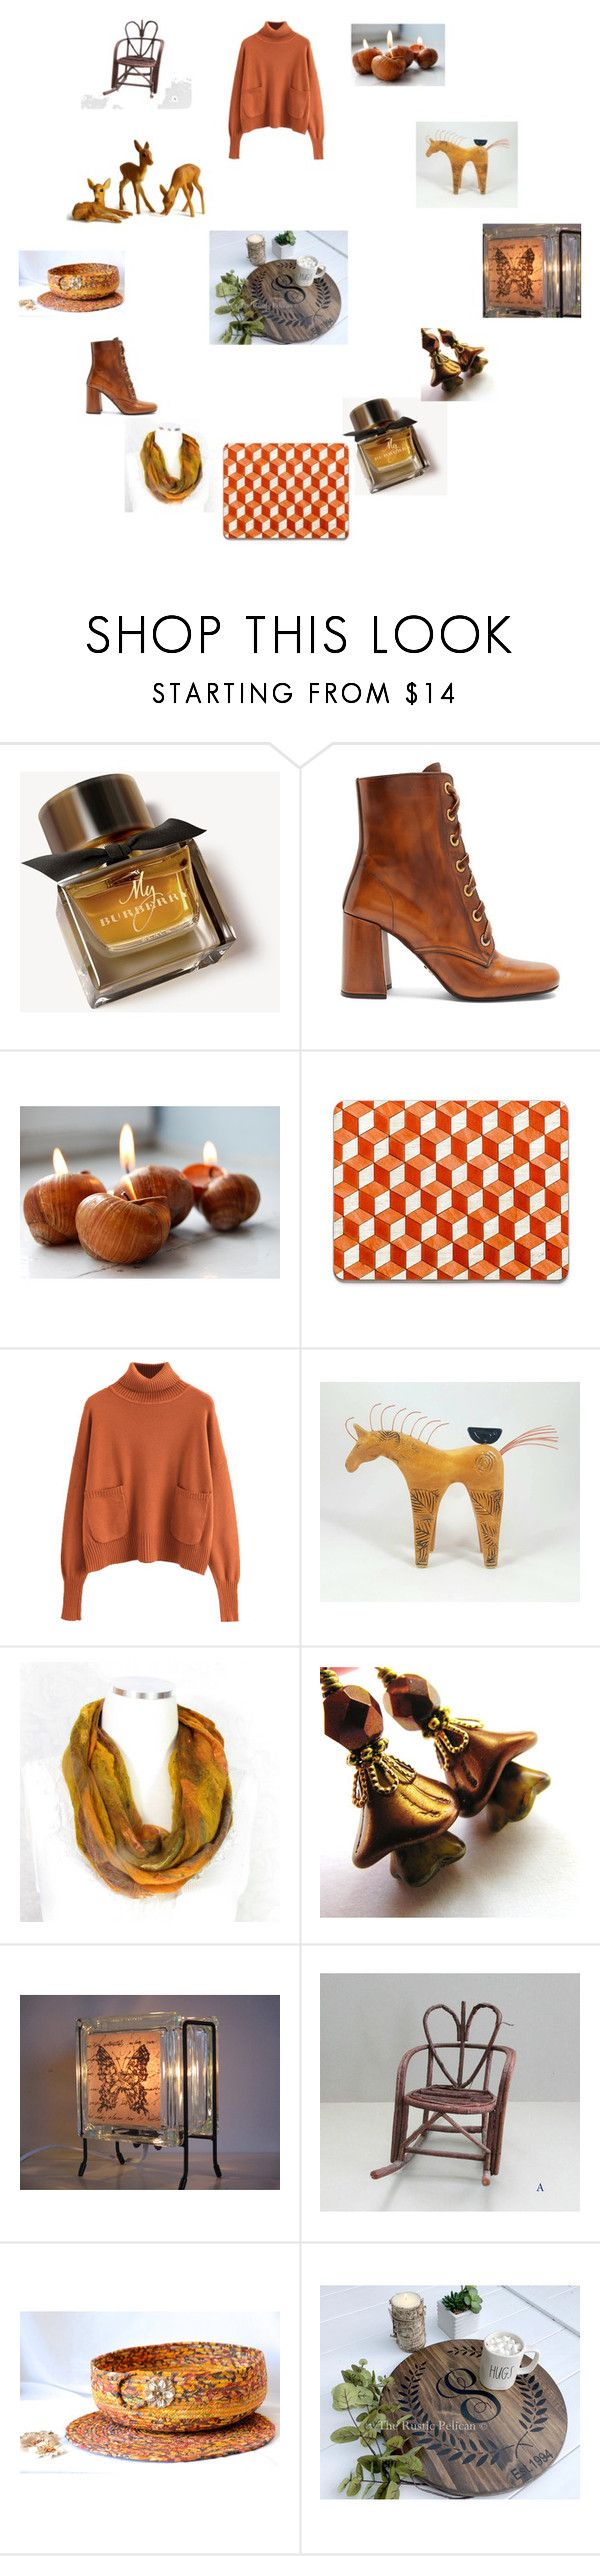 """orange brown gifts"" by einder ❤ liked on Polyvore featuring interior, interiors, interior design, home, home decor, interior decorating, Burberry and Prada"